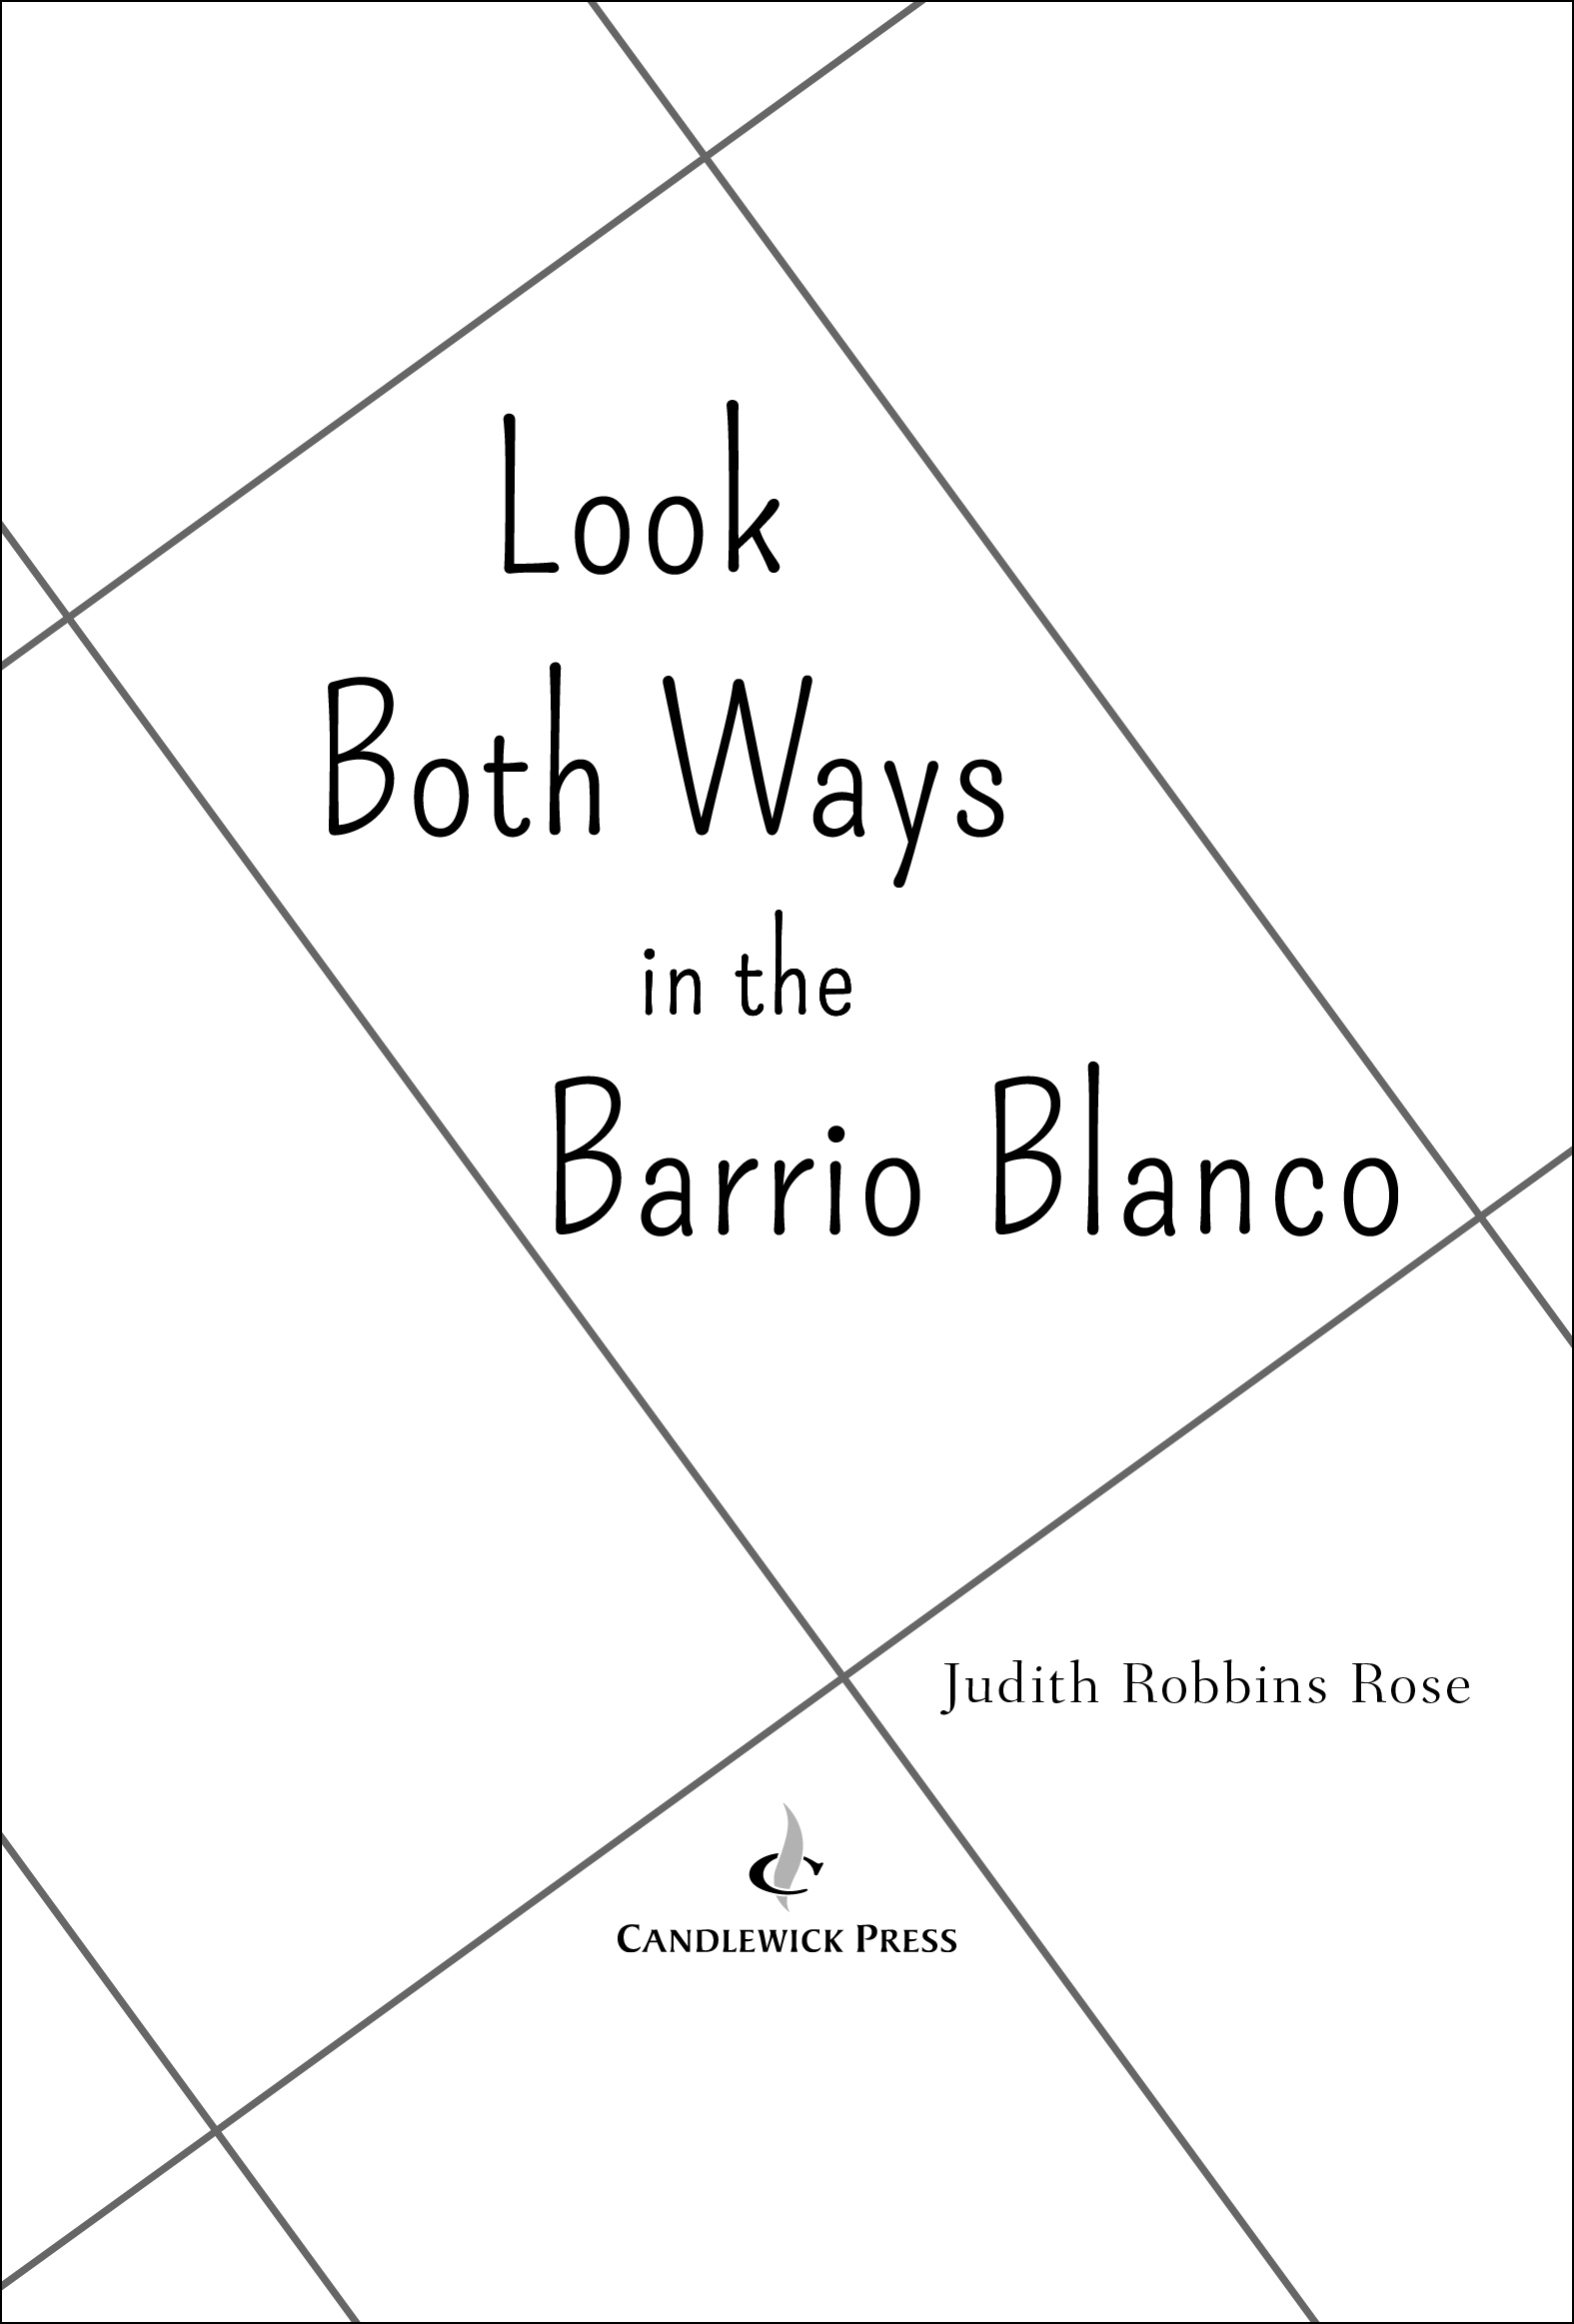 Title page for LOOK BOTH WAYS IN THE BARRIO BLANCO